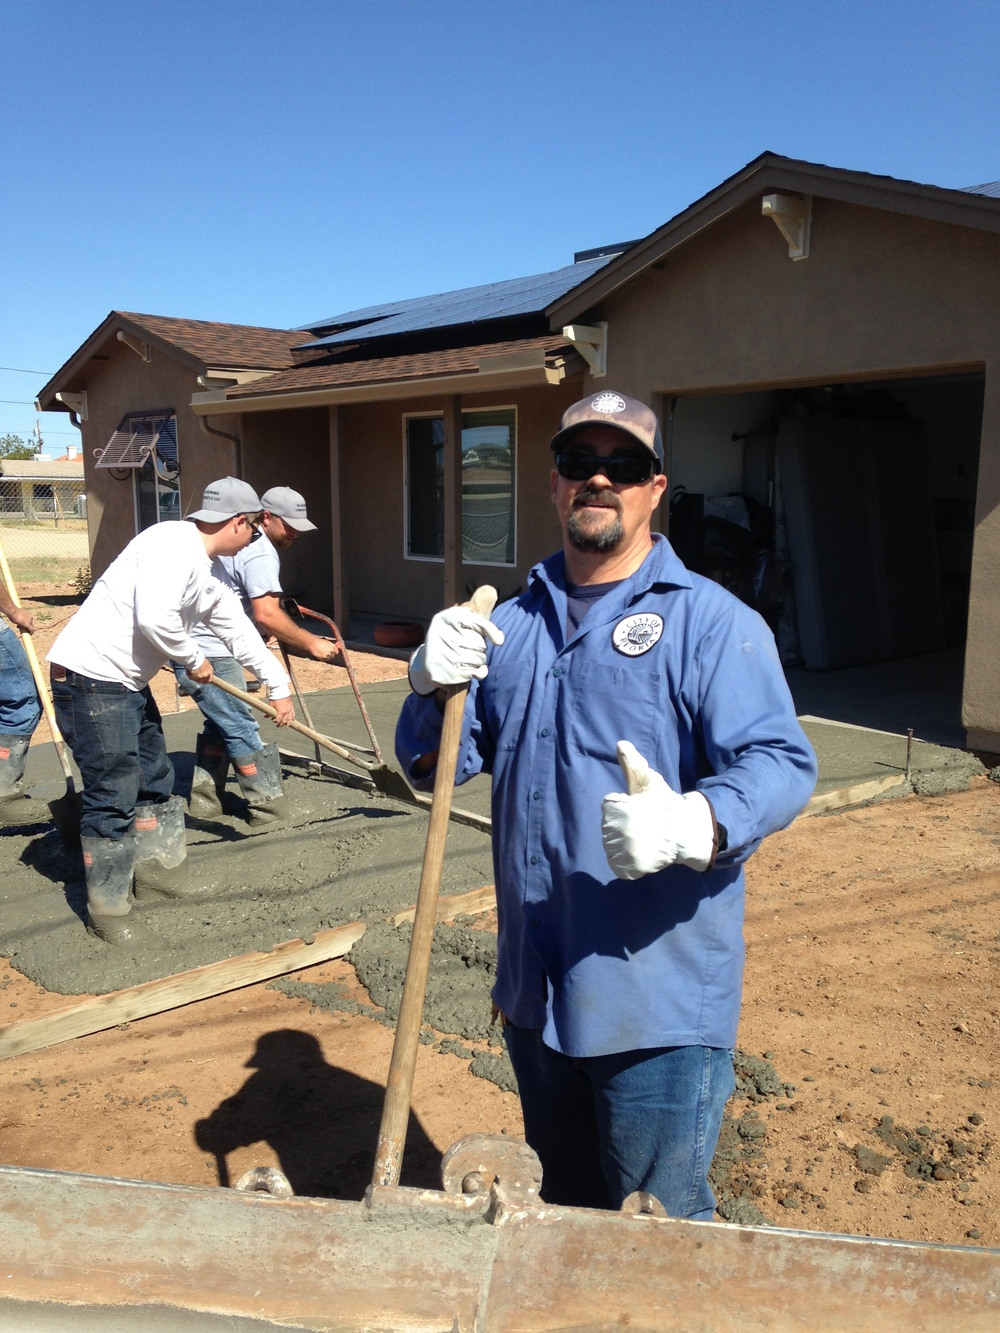 05.09.15_12 Concrete pour_Tom Davis and volunteers.jpg